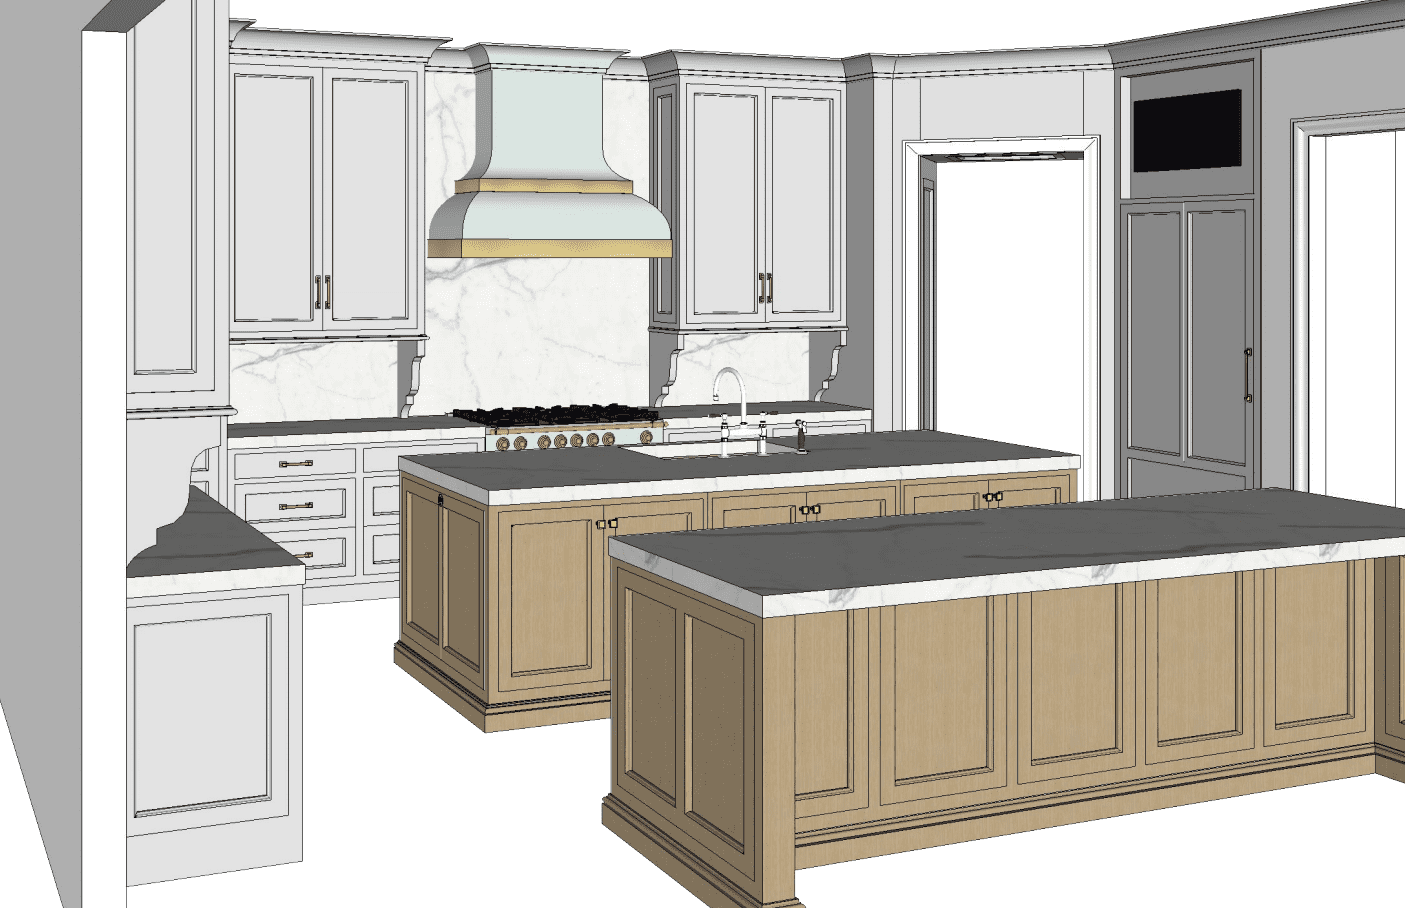 Kitchen sketch with two islands and custom blue hood.